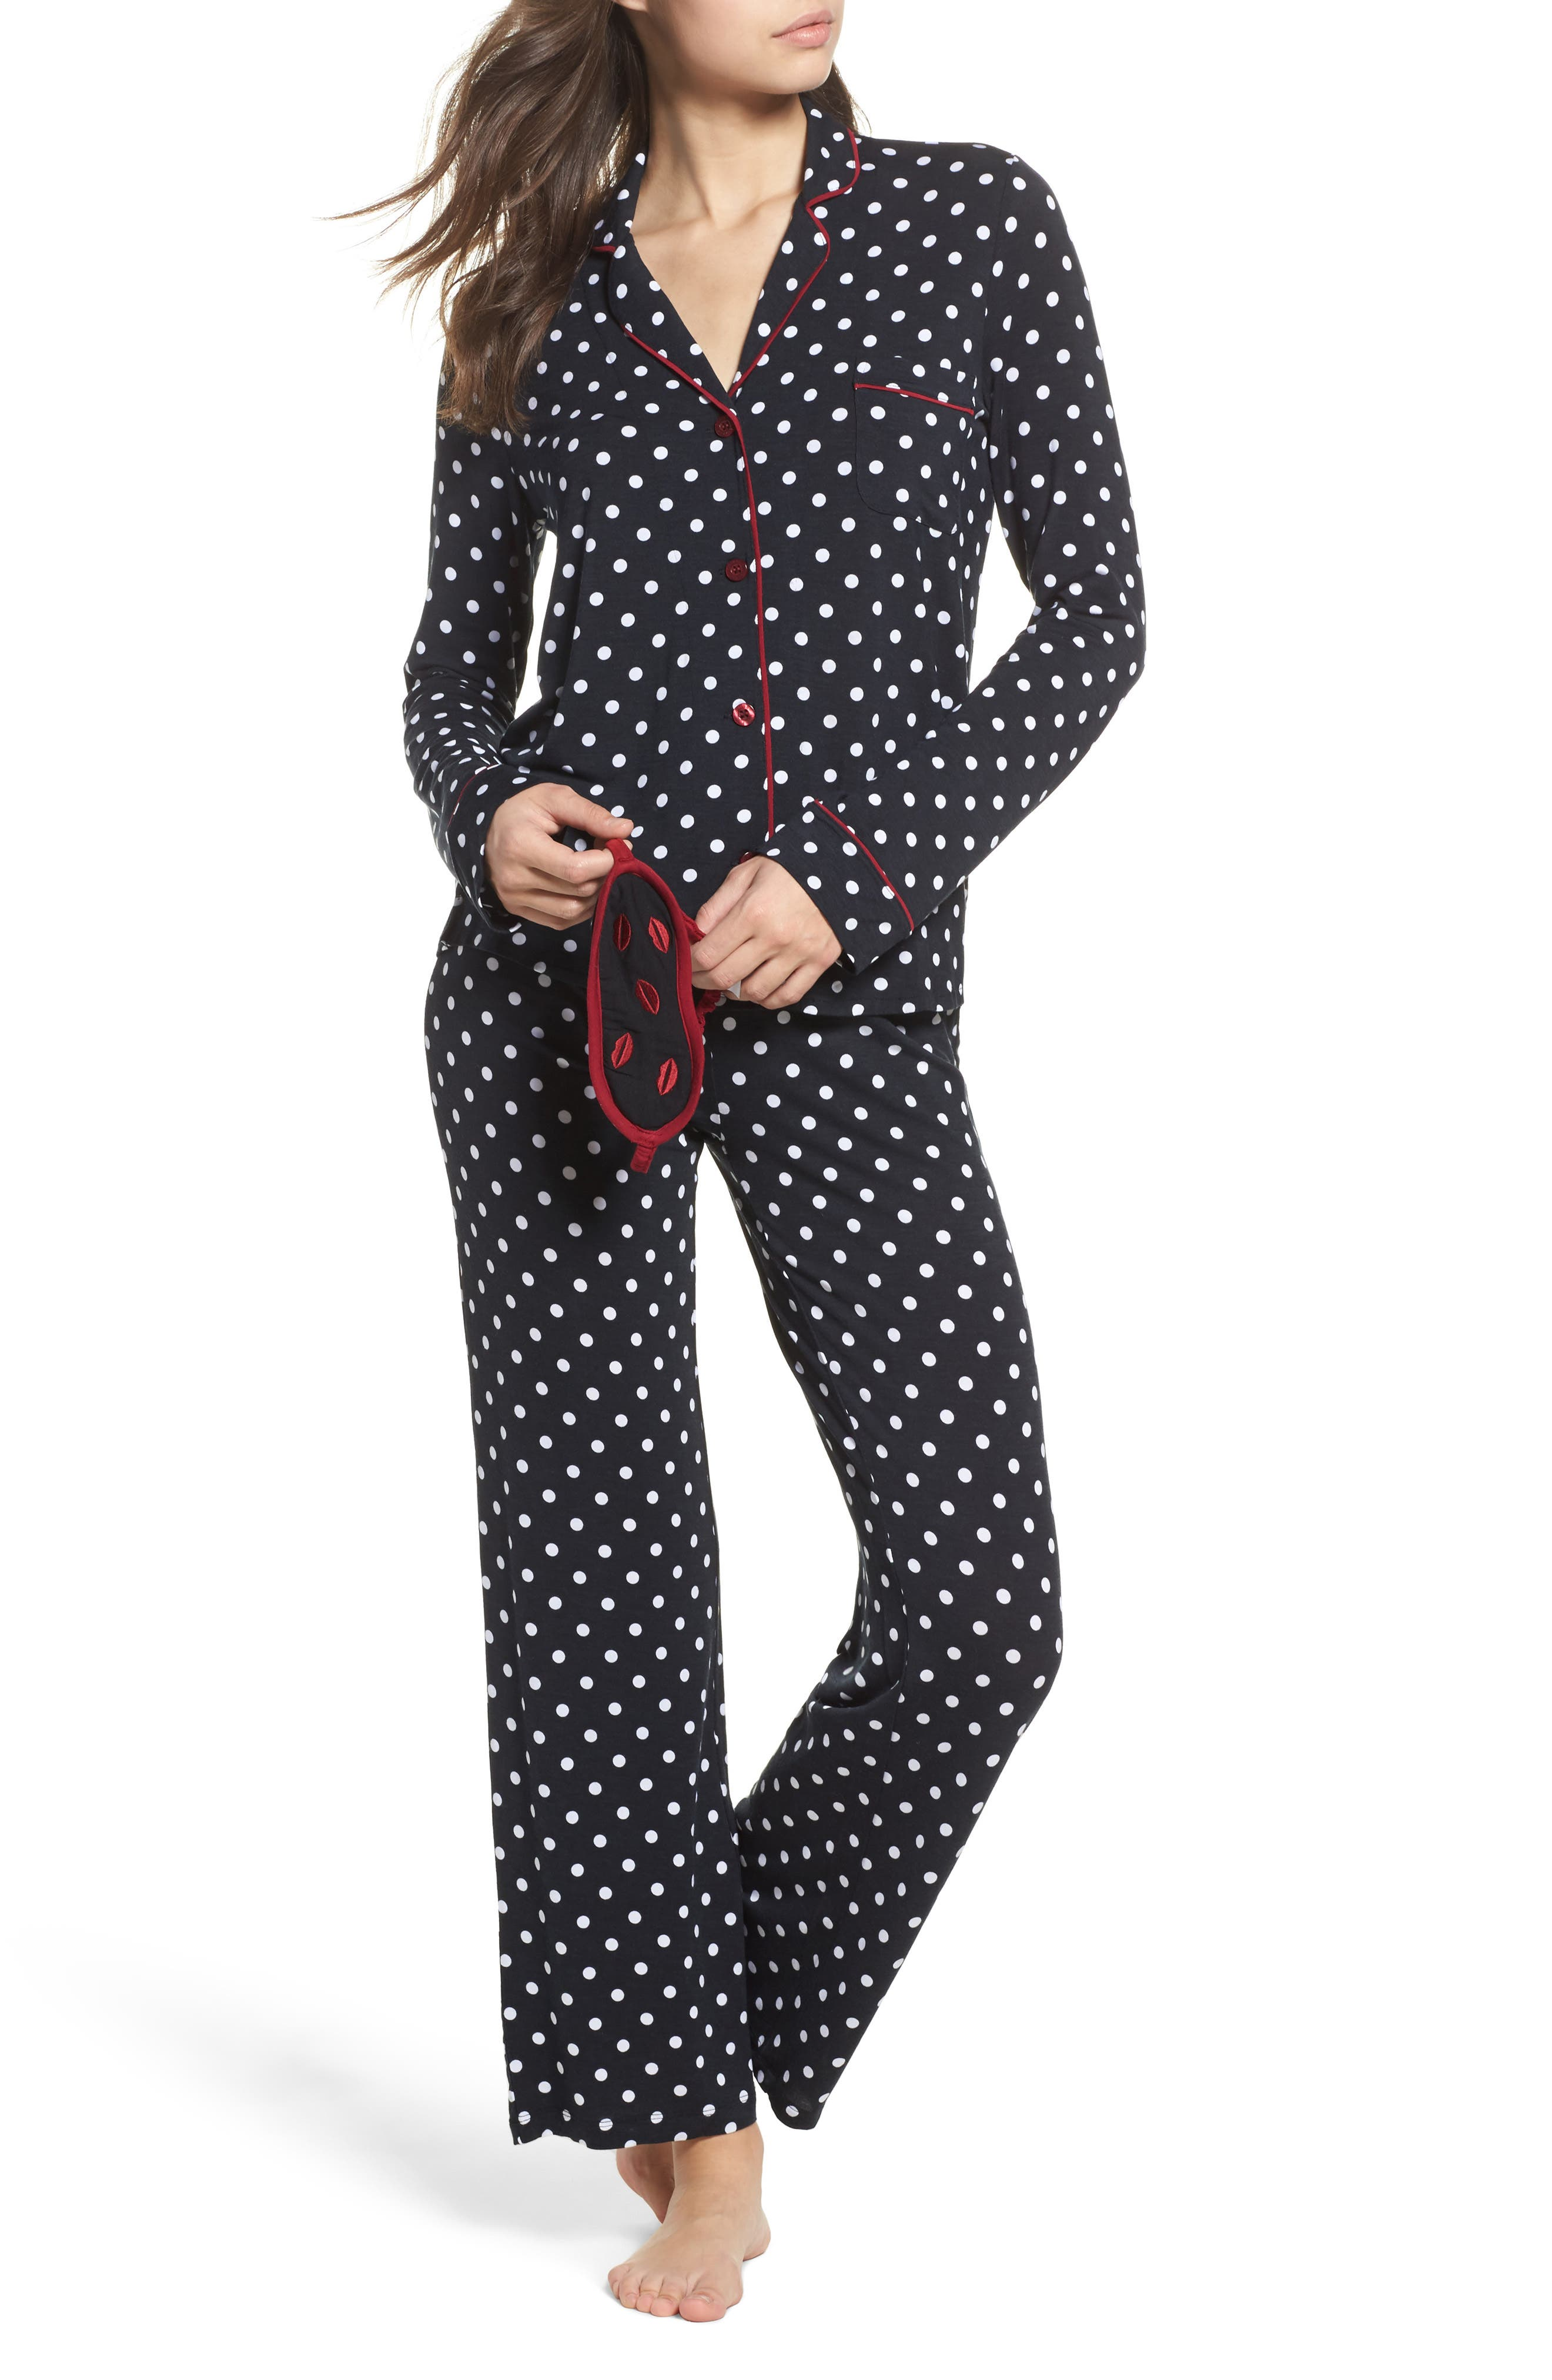 Stretch Modal Pajamas & Eye Mask,                             Main thumbnail 1, color,                             Black